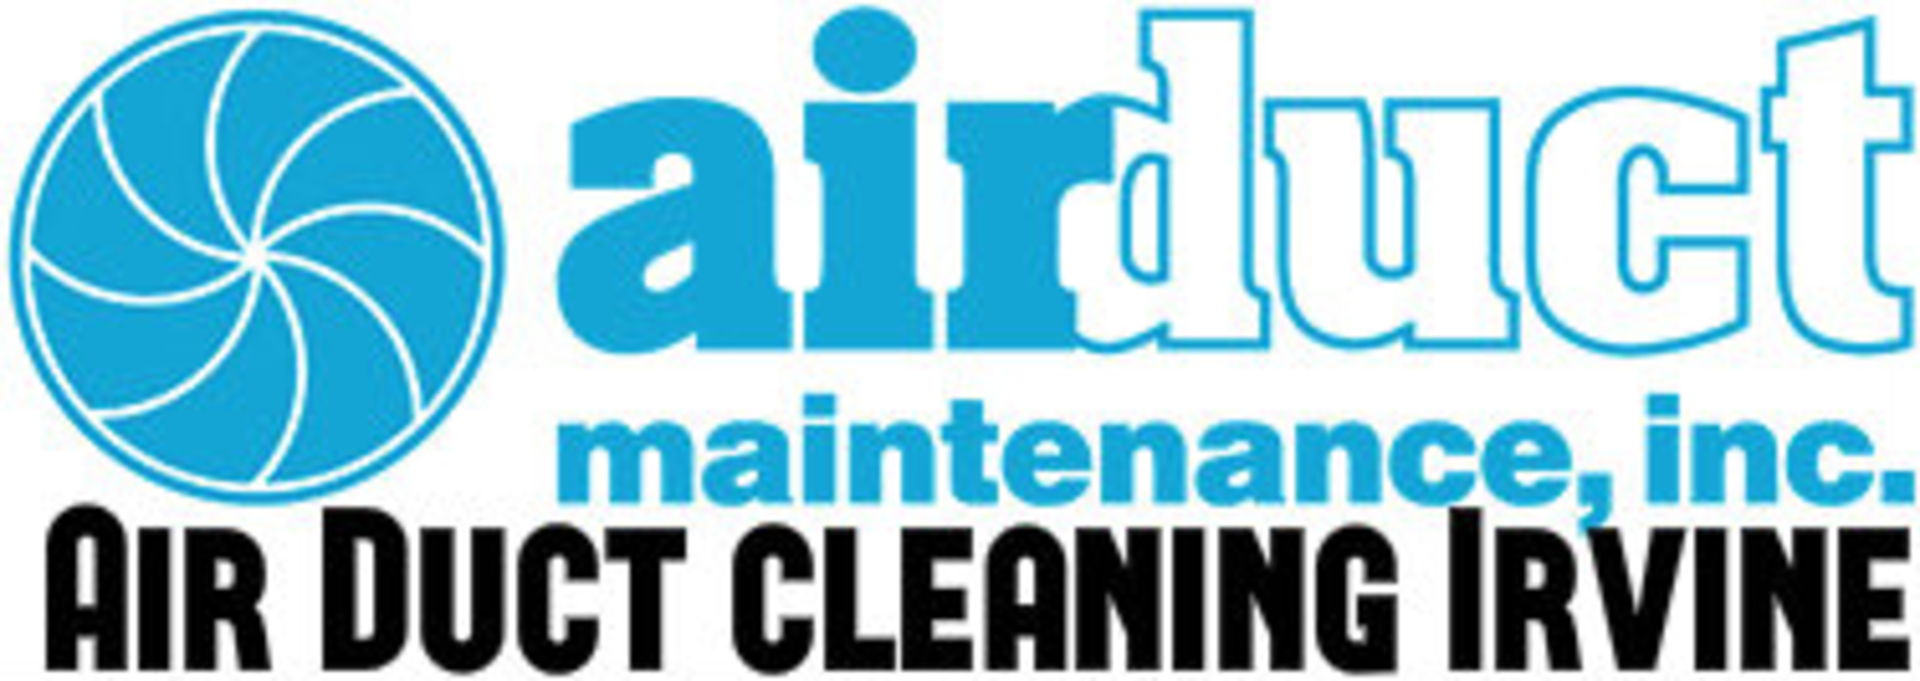 Have your Air Duct cleaning, Irvine cleaning company image